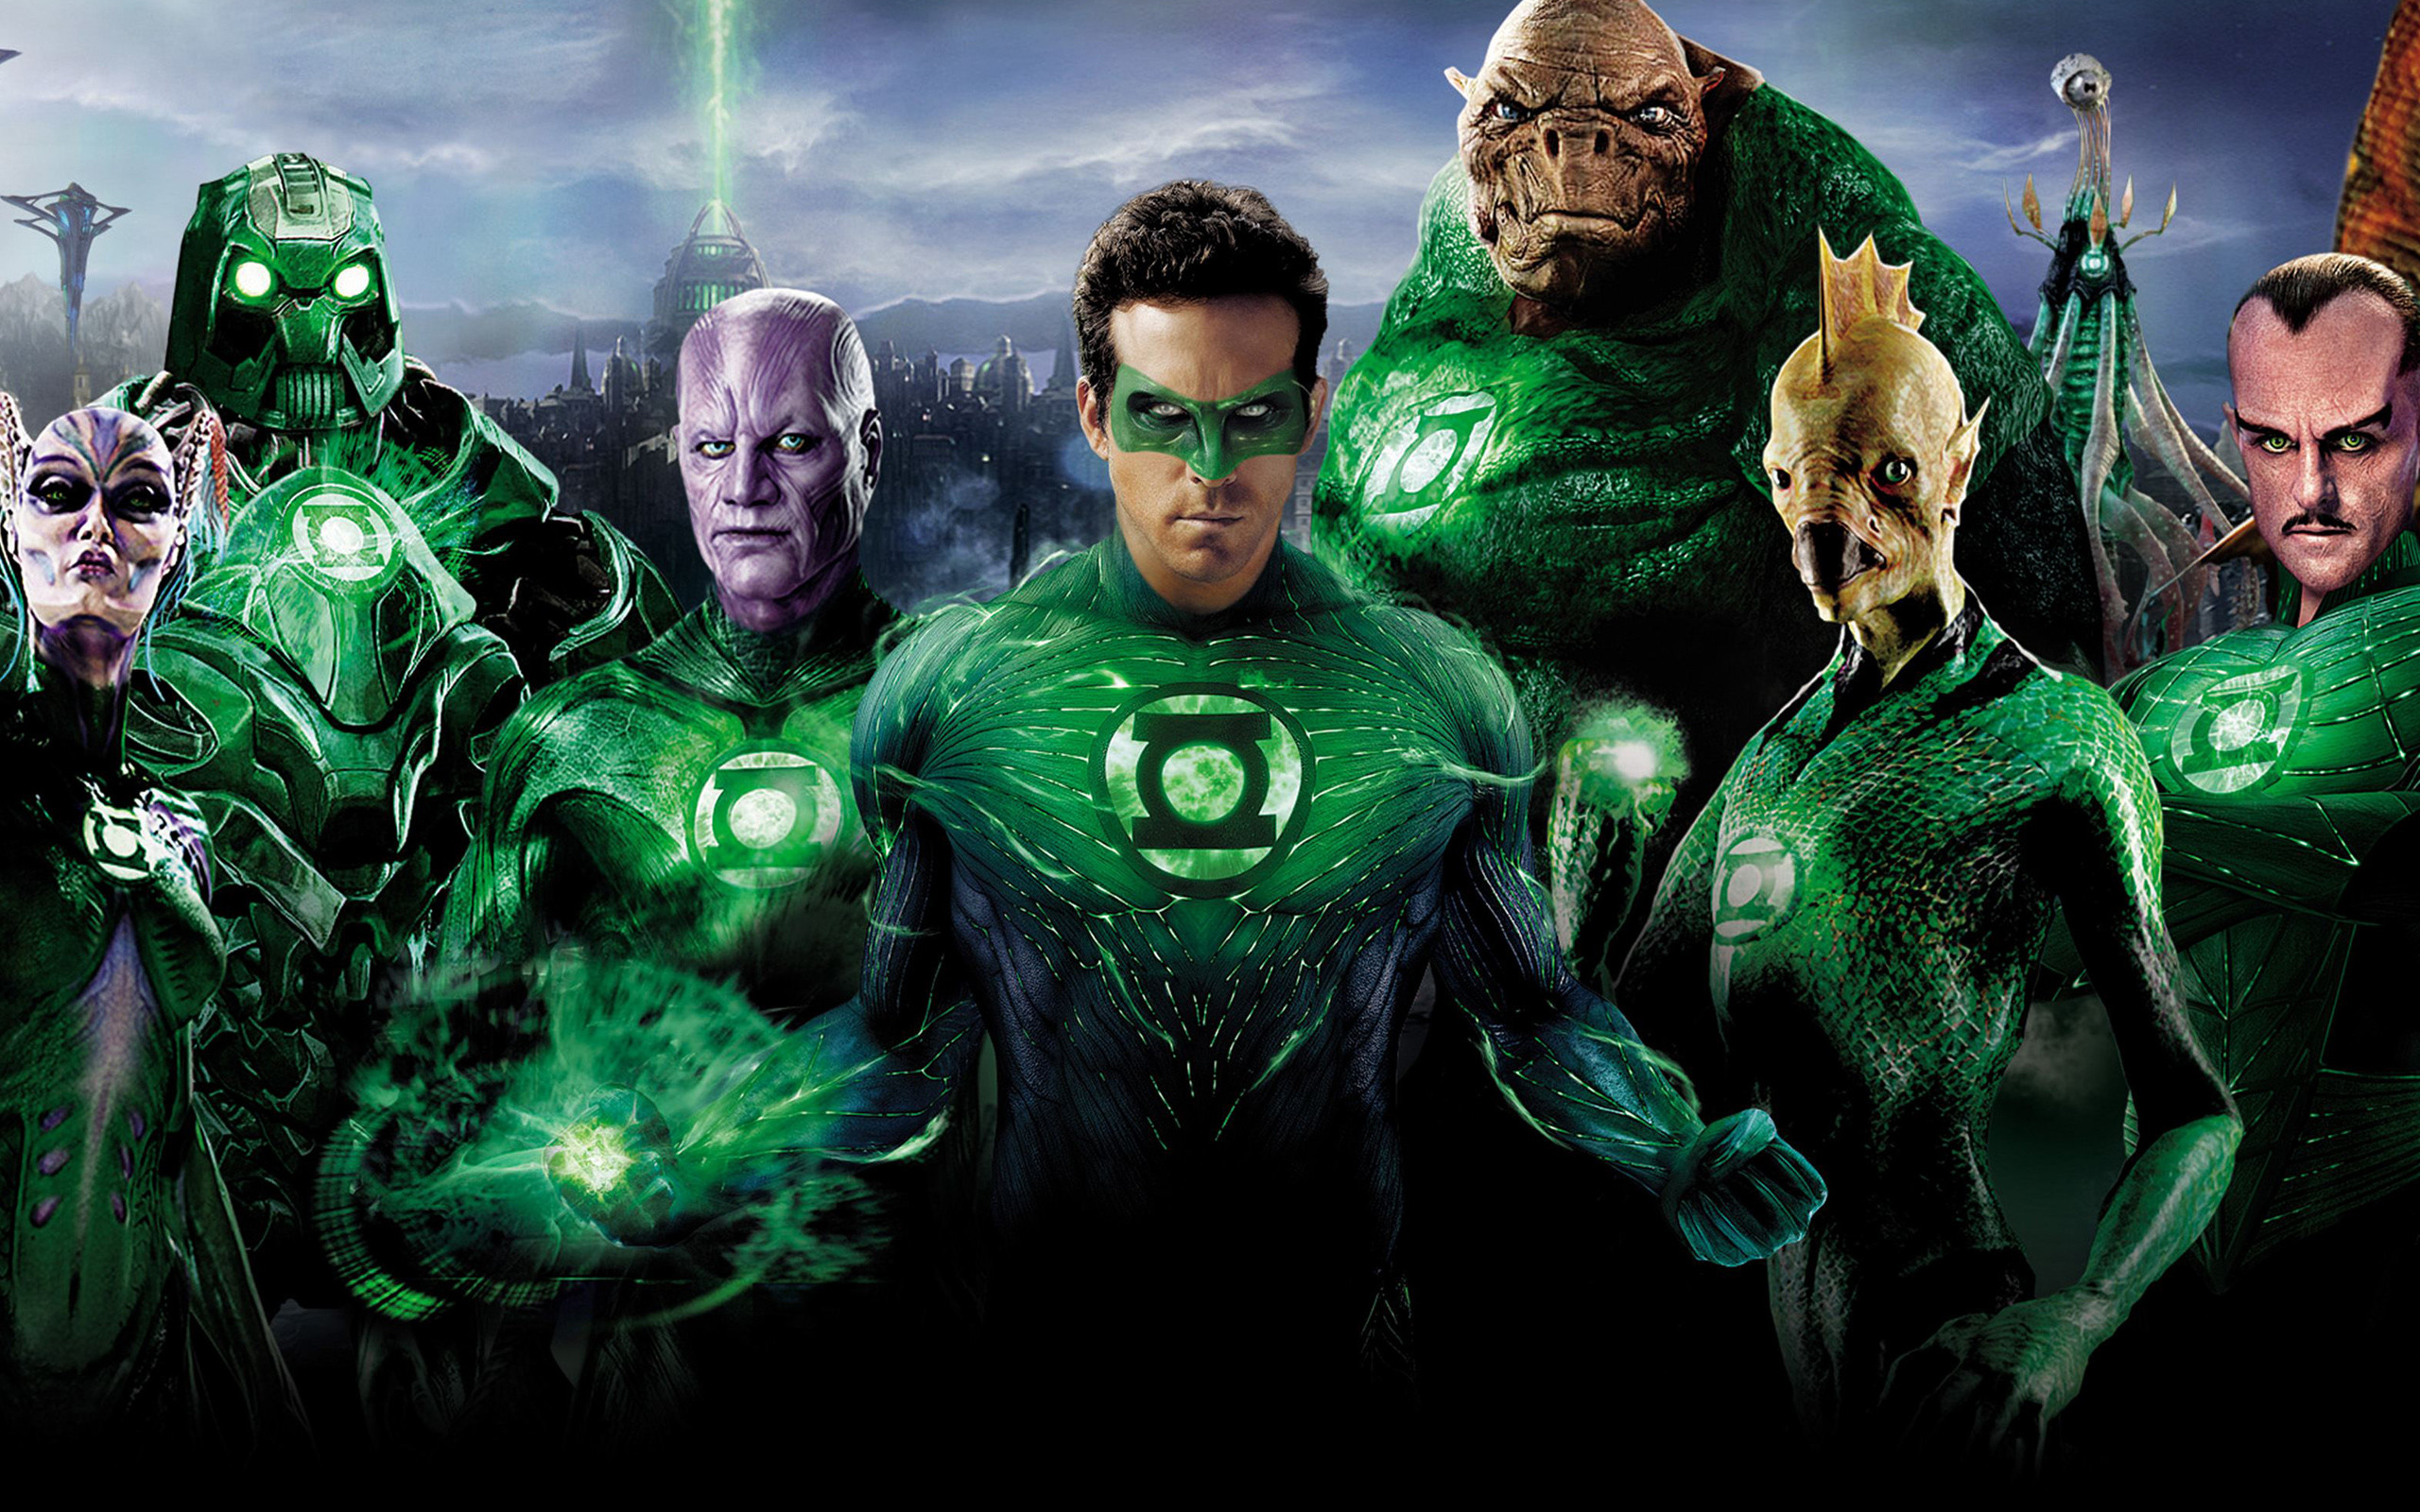 2560x1600 Green Lantern Superheroes Wallpapers | HD Wallpapers